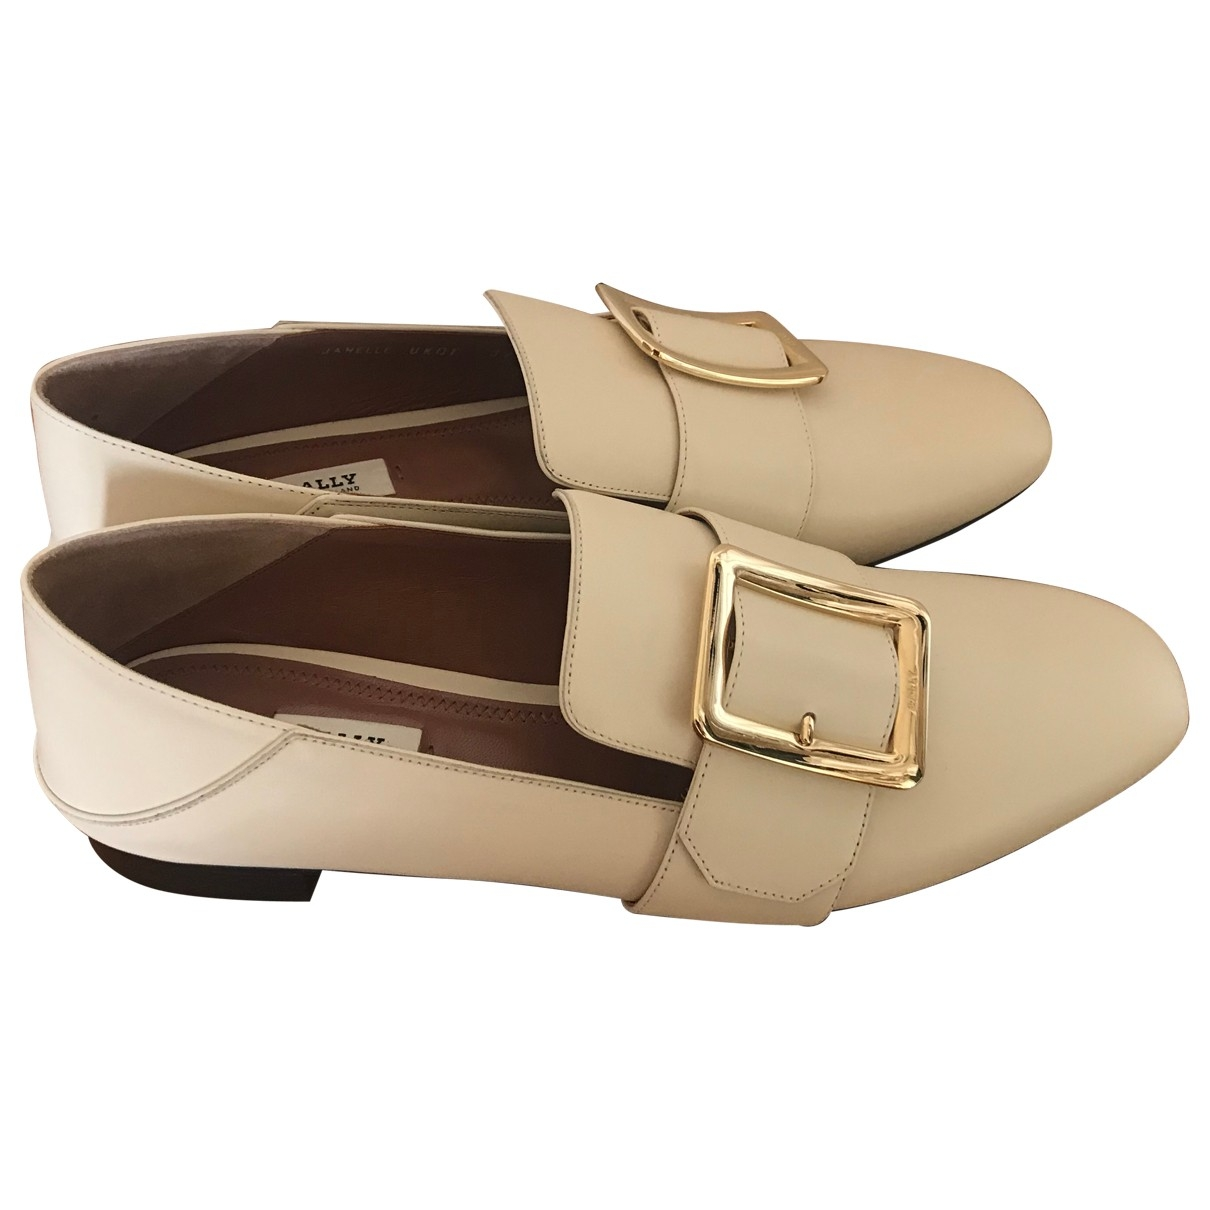 Bally \N White Leather Flats for Women 39.5 EU